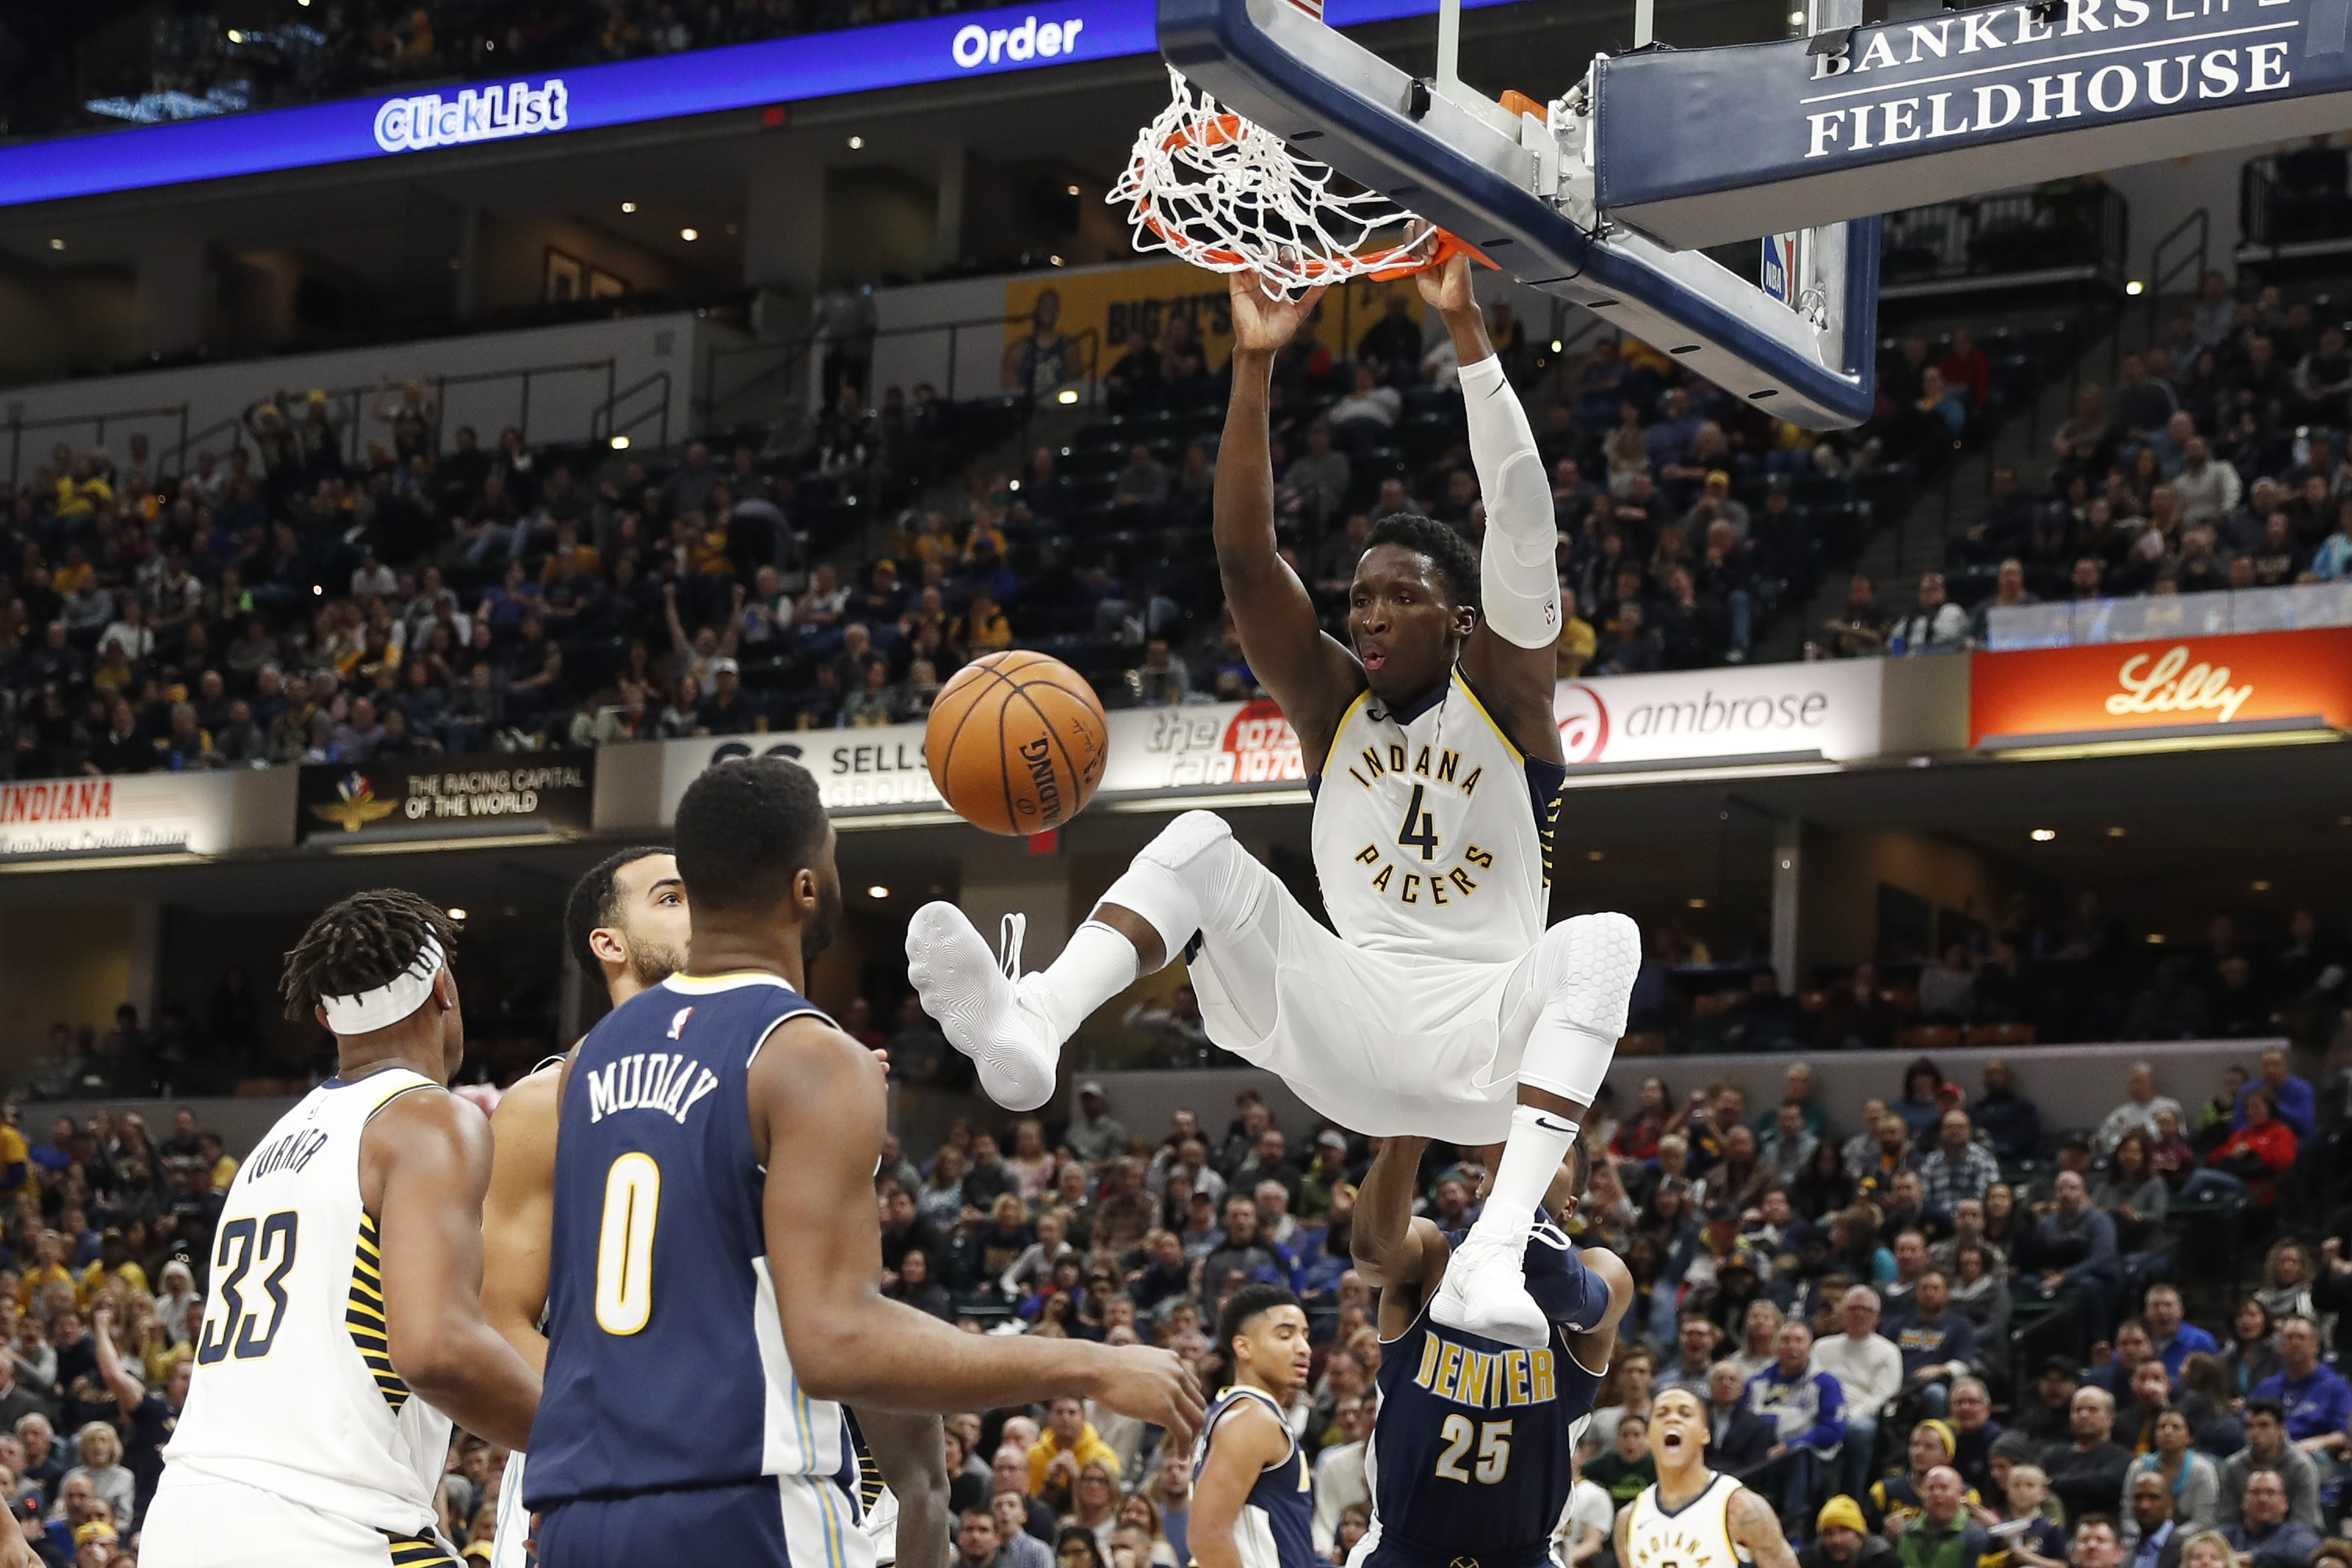 Oladipo scores career-high 47, Pacers top Nuggets in OT